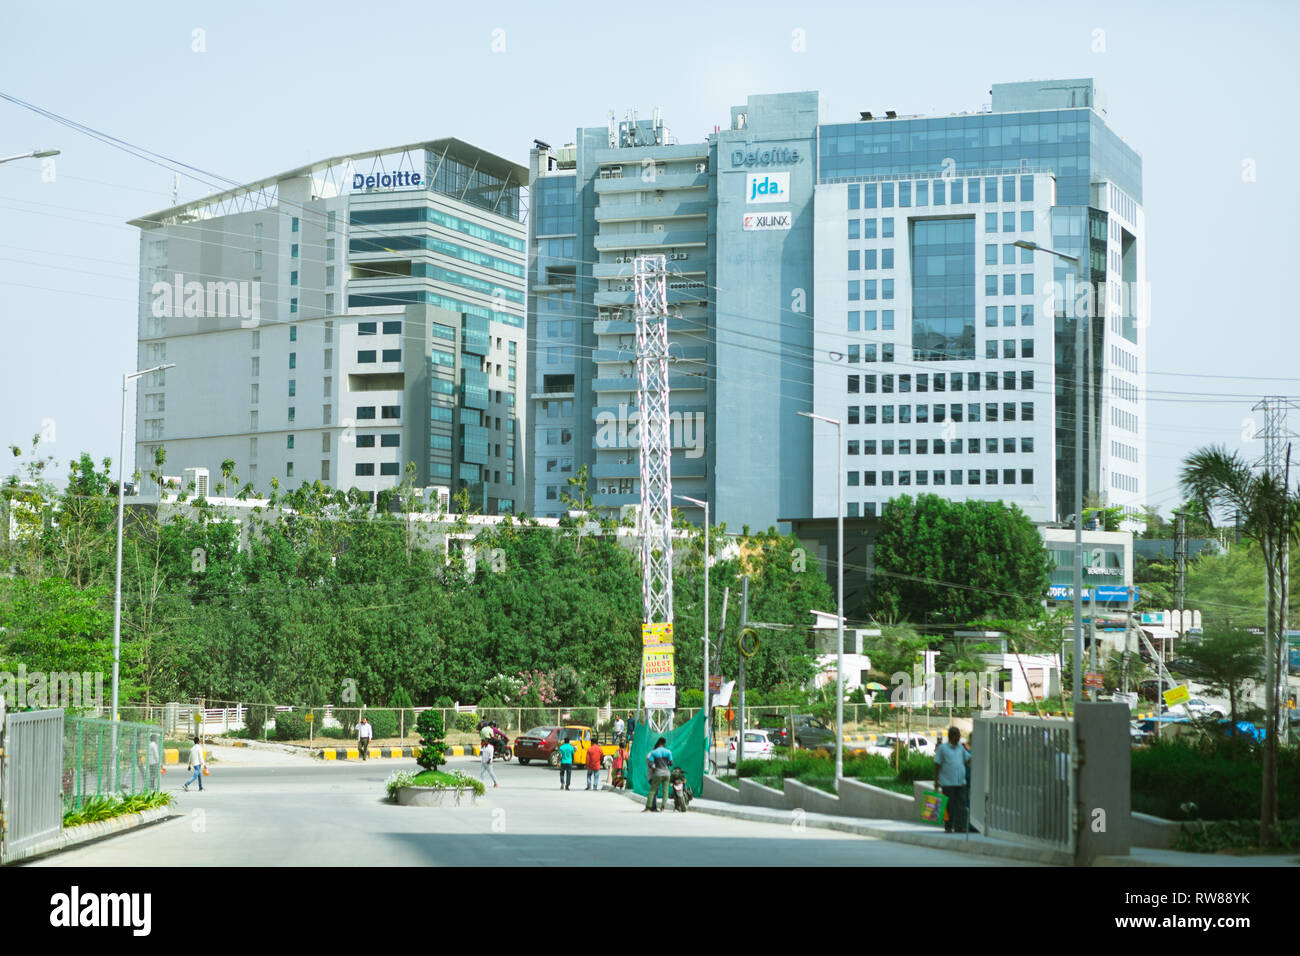 Meenakshi Tech Park is the state-of-the-art bulding houses leading software companies delotte,jda,xlinx in Hyderabad,India - Stock Image